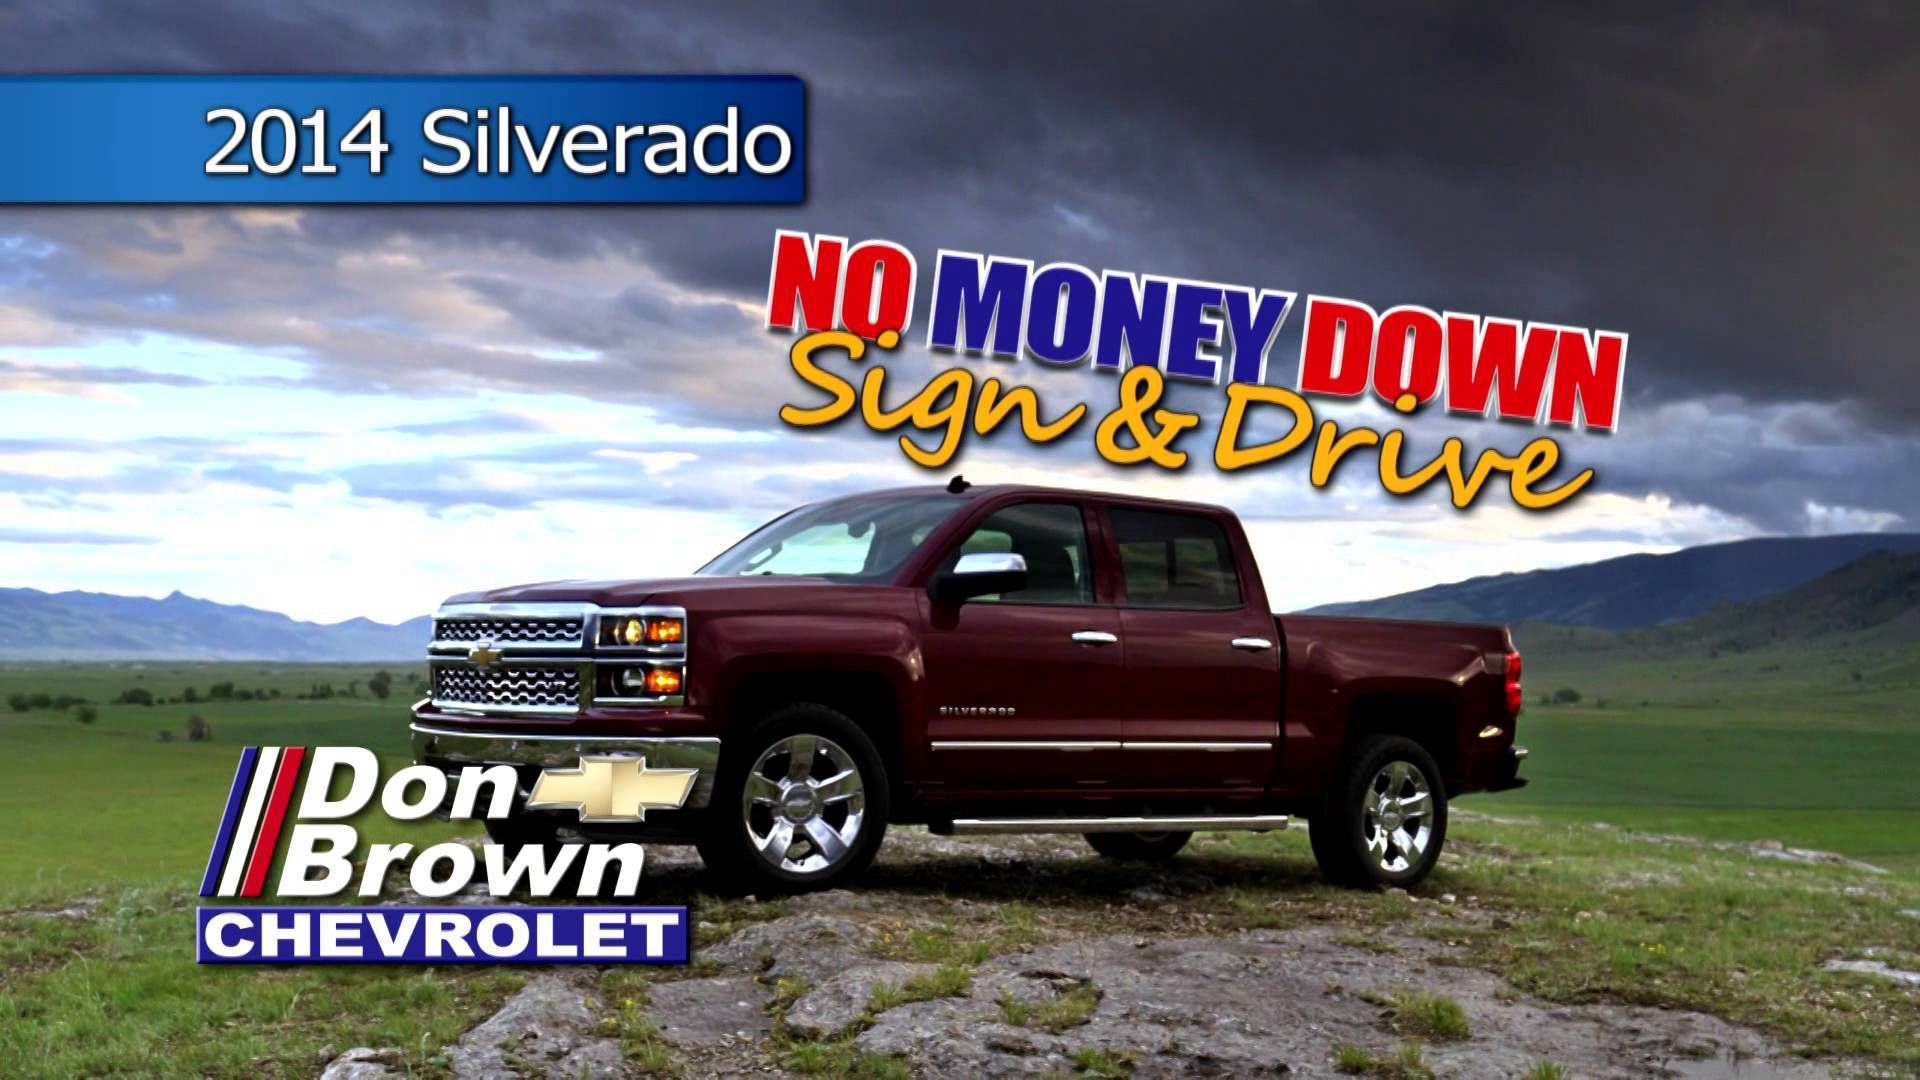 veja est vel dispon don o duas at modelo sign do al vers pin limited time es and cruze offer em chevrolet brown m drive mais esportivo